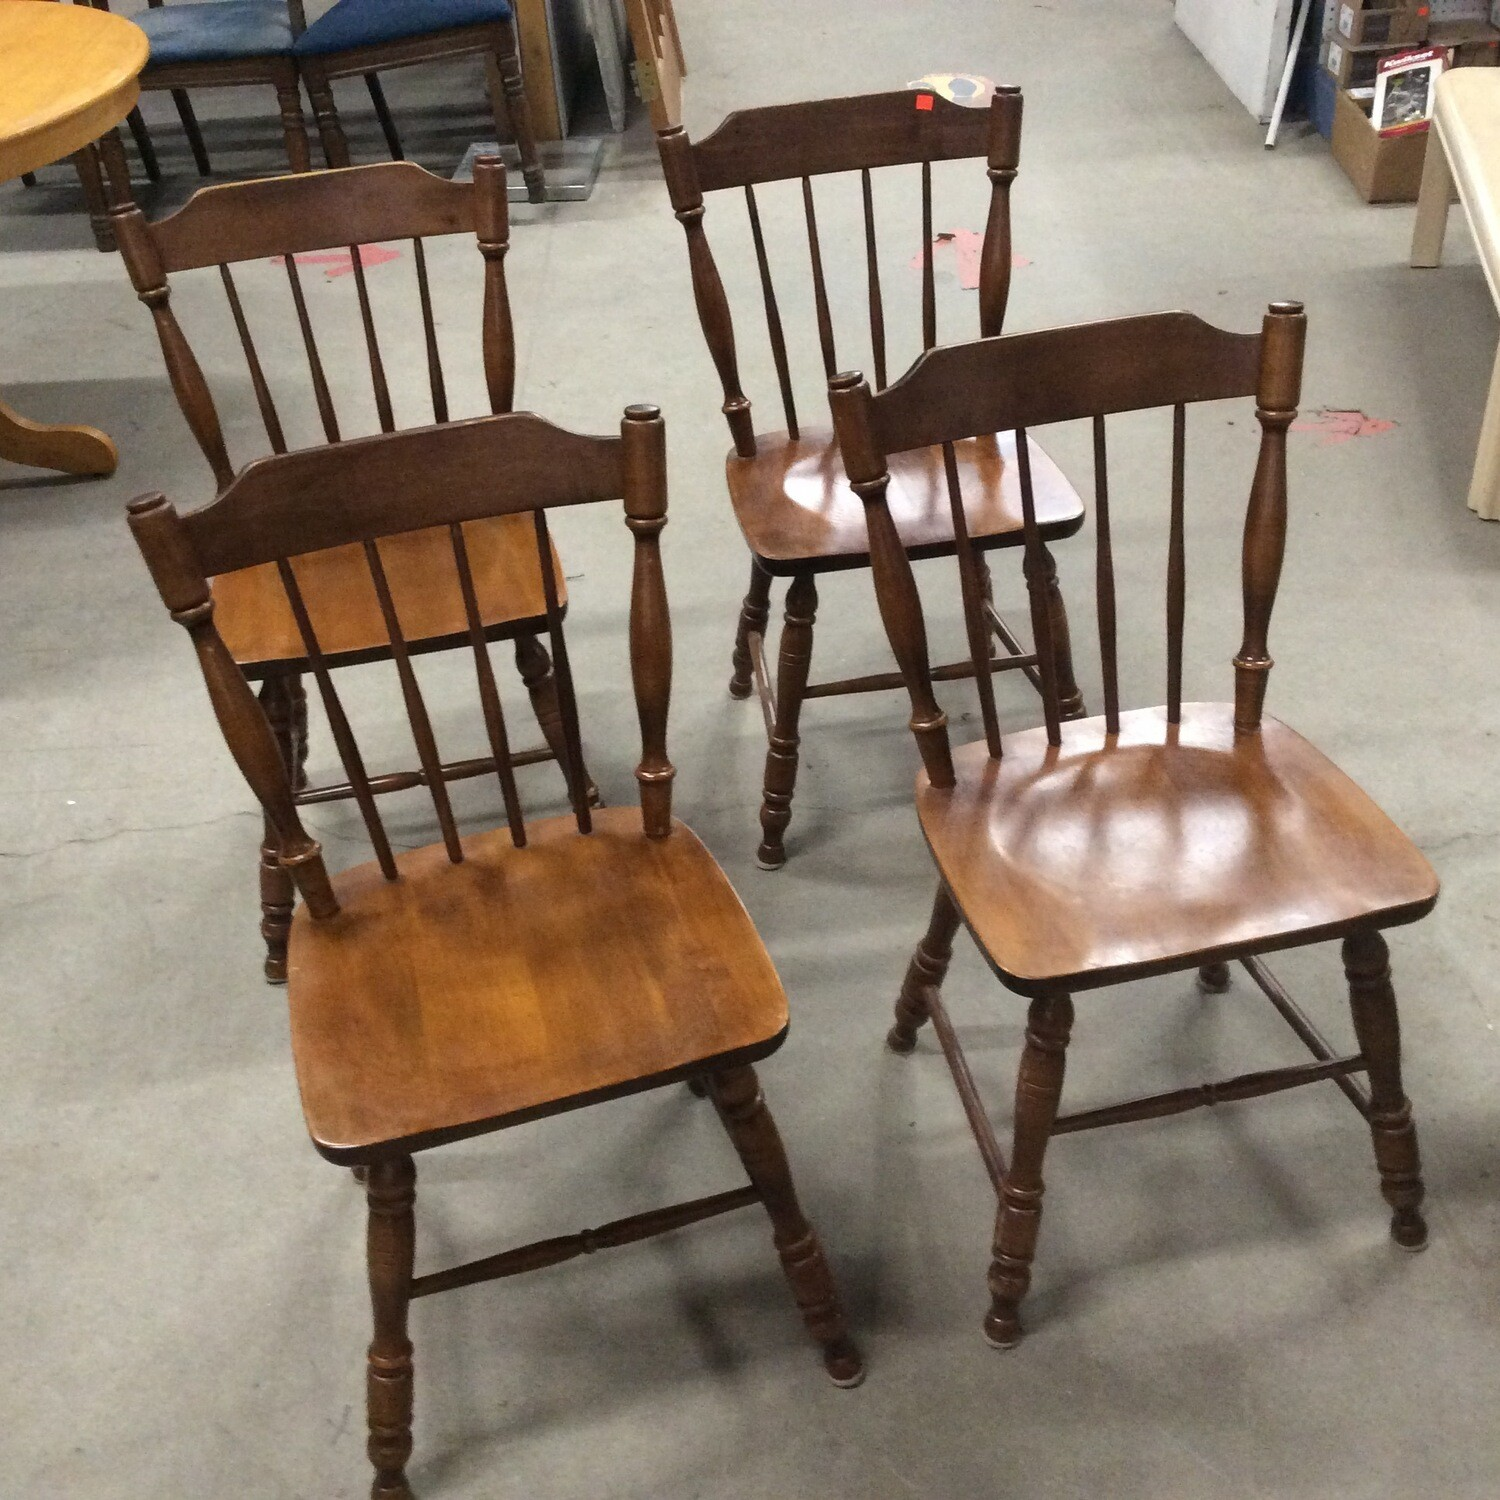 Set of 4 Solid Wood Kitchen/Dining Room Chairs